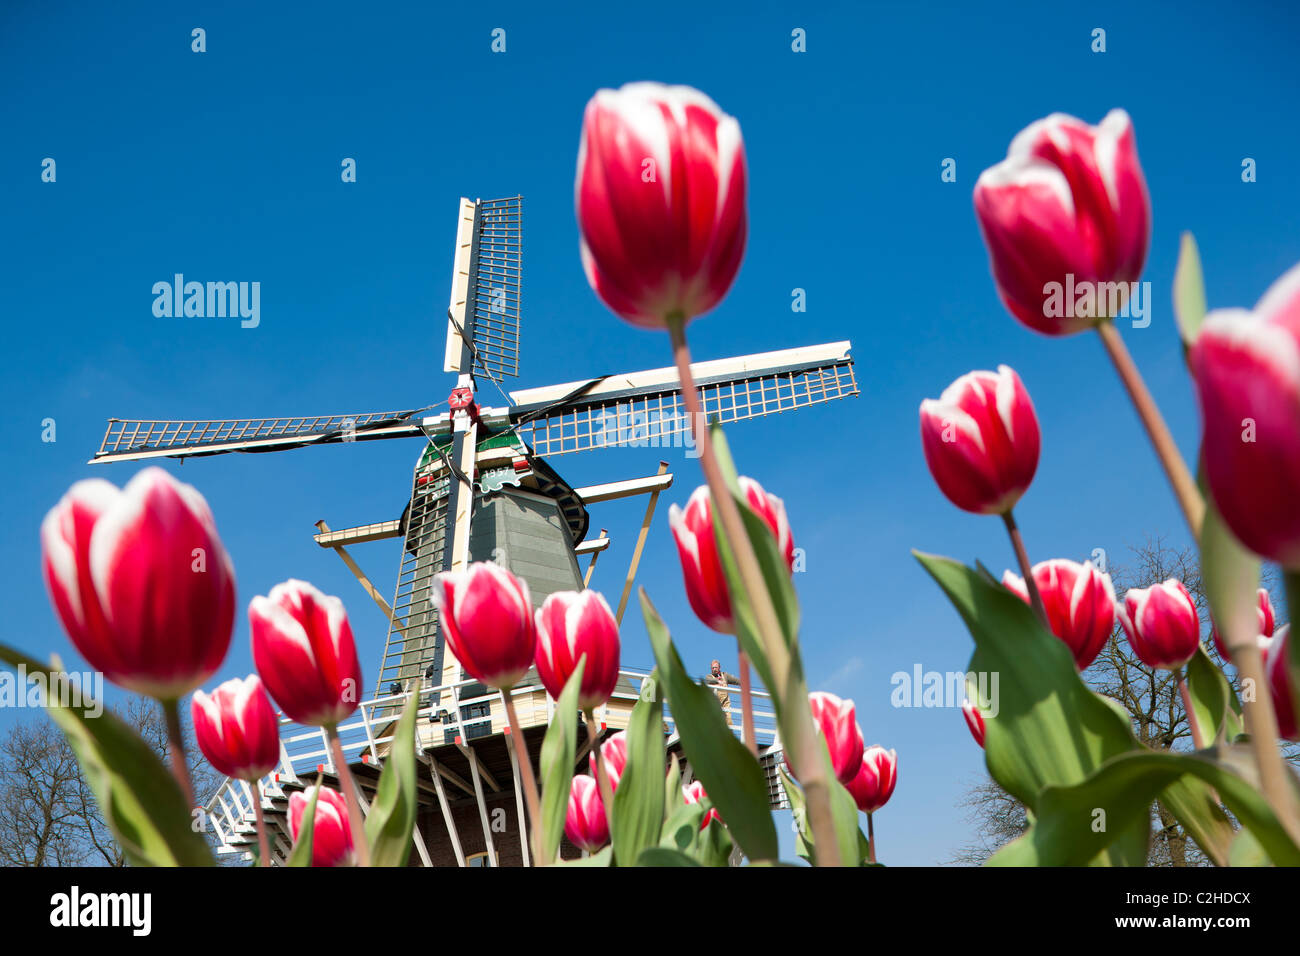 Keukenhof Gardens. Dutch windmill with miller and tall red and white tulips in the Keukenhof Tulip Flower Gardens - Stock Image